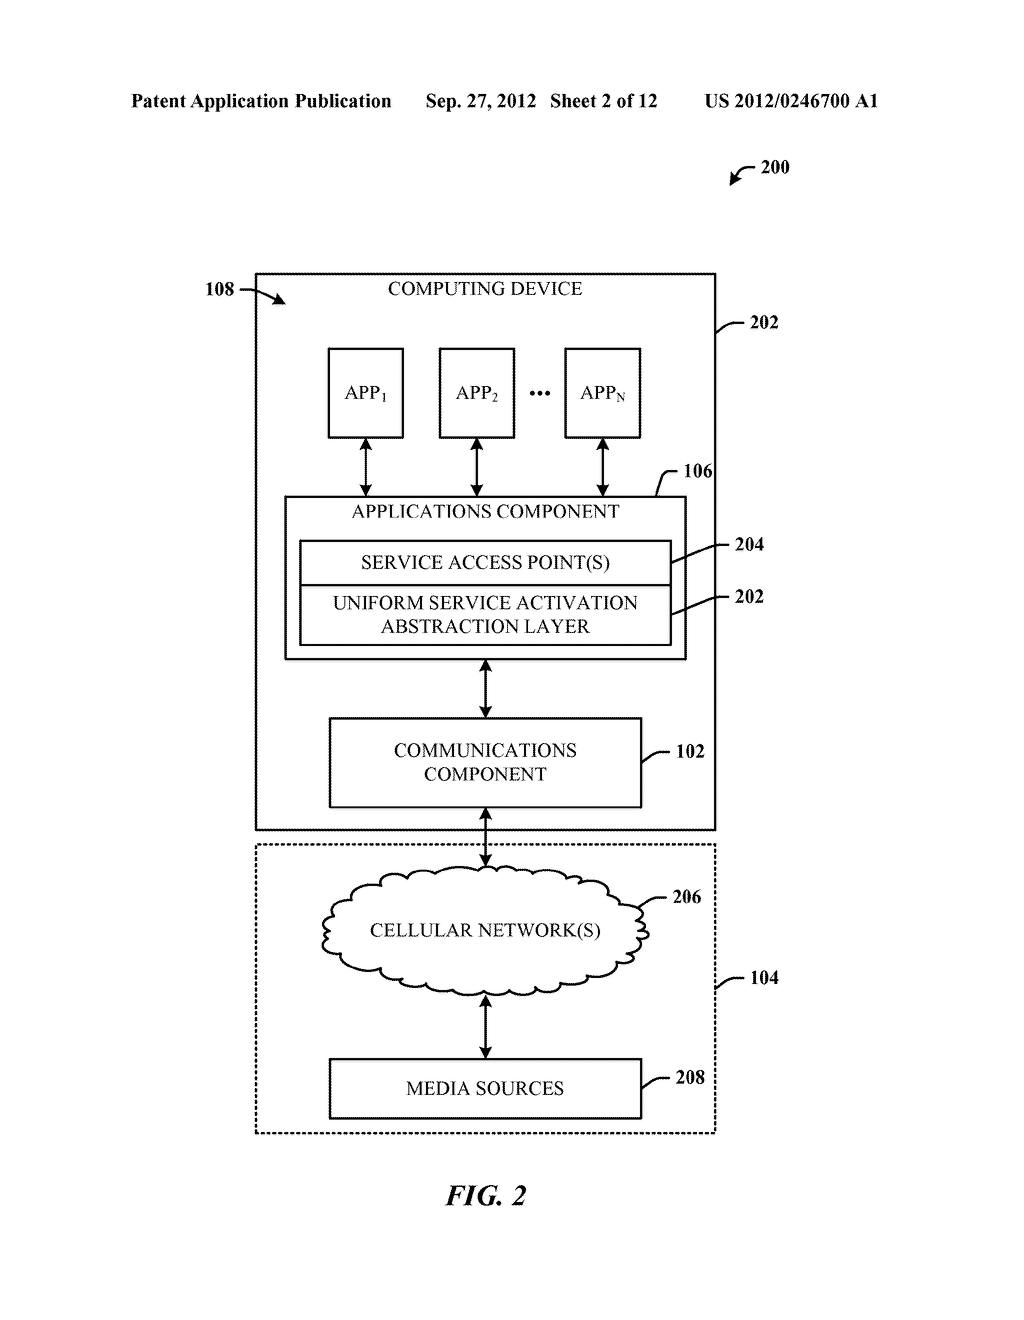 QoS CHANNELS FOR MULTIMEDIA SERVICES ON A GENERAL PURPOSE OPERATING SYSTEM     PLATFORM USING DATA CARDS - diagram, schematic, and image 03